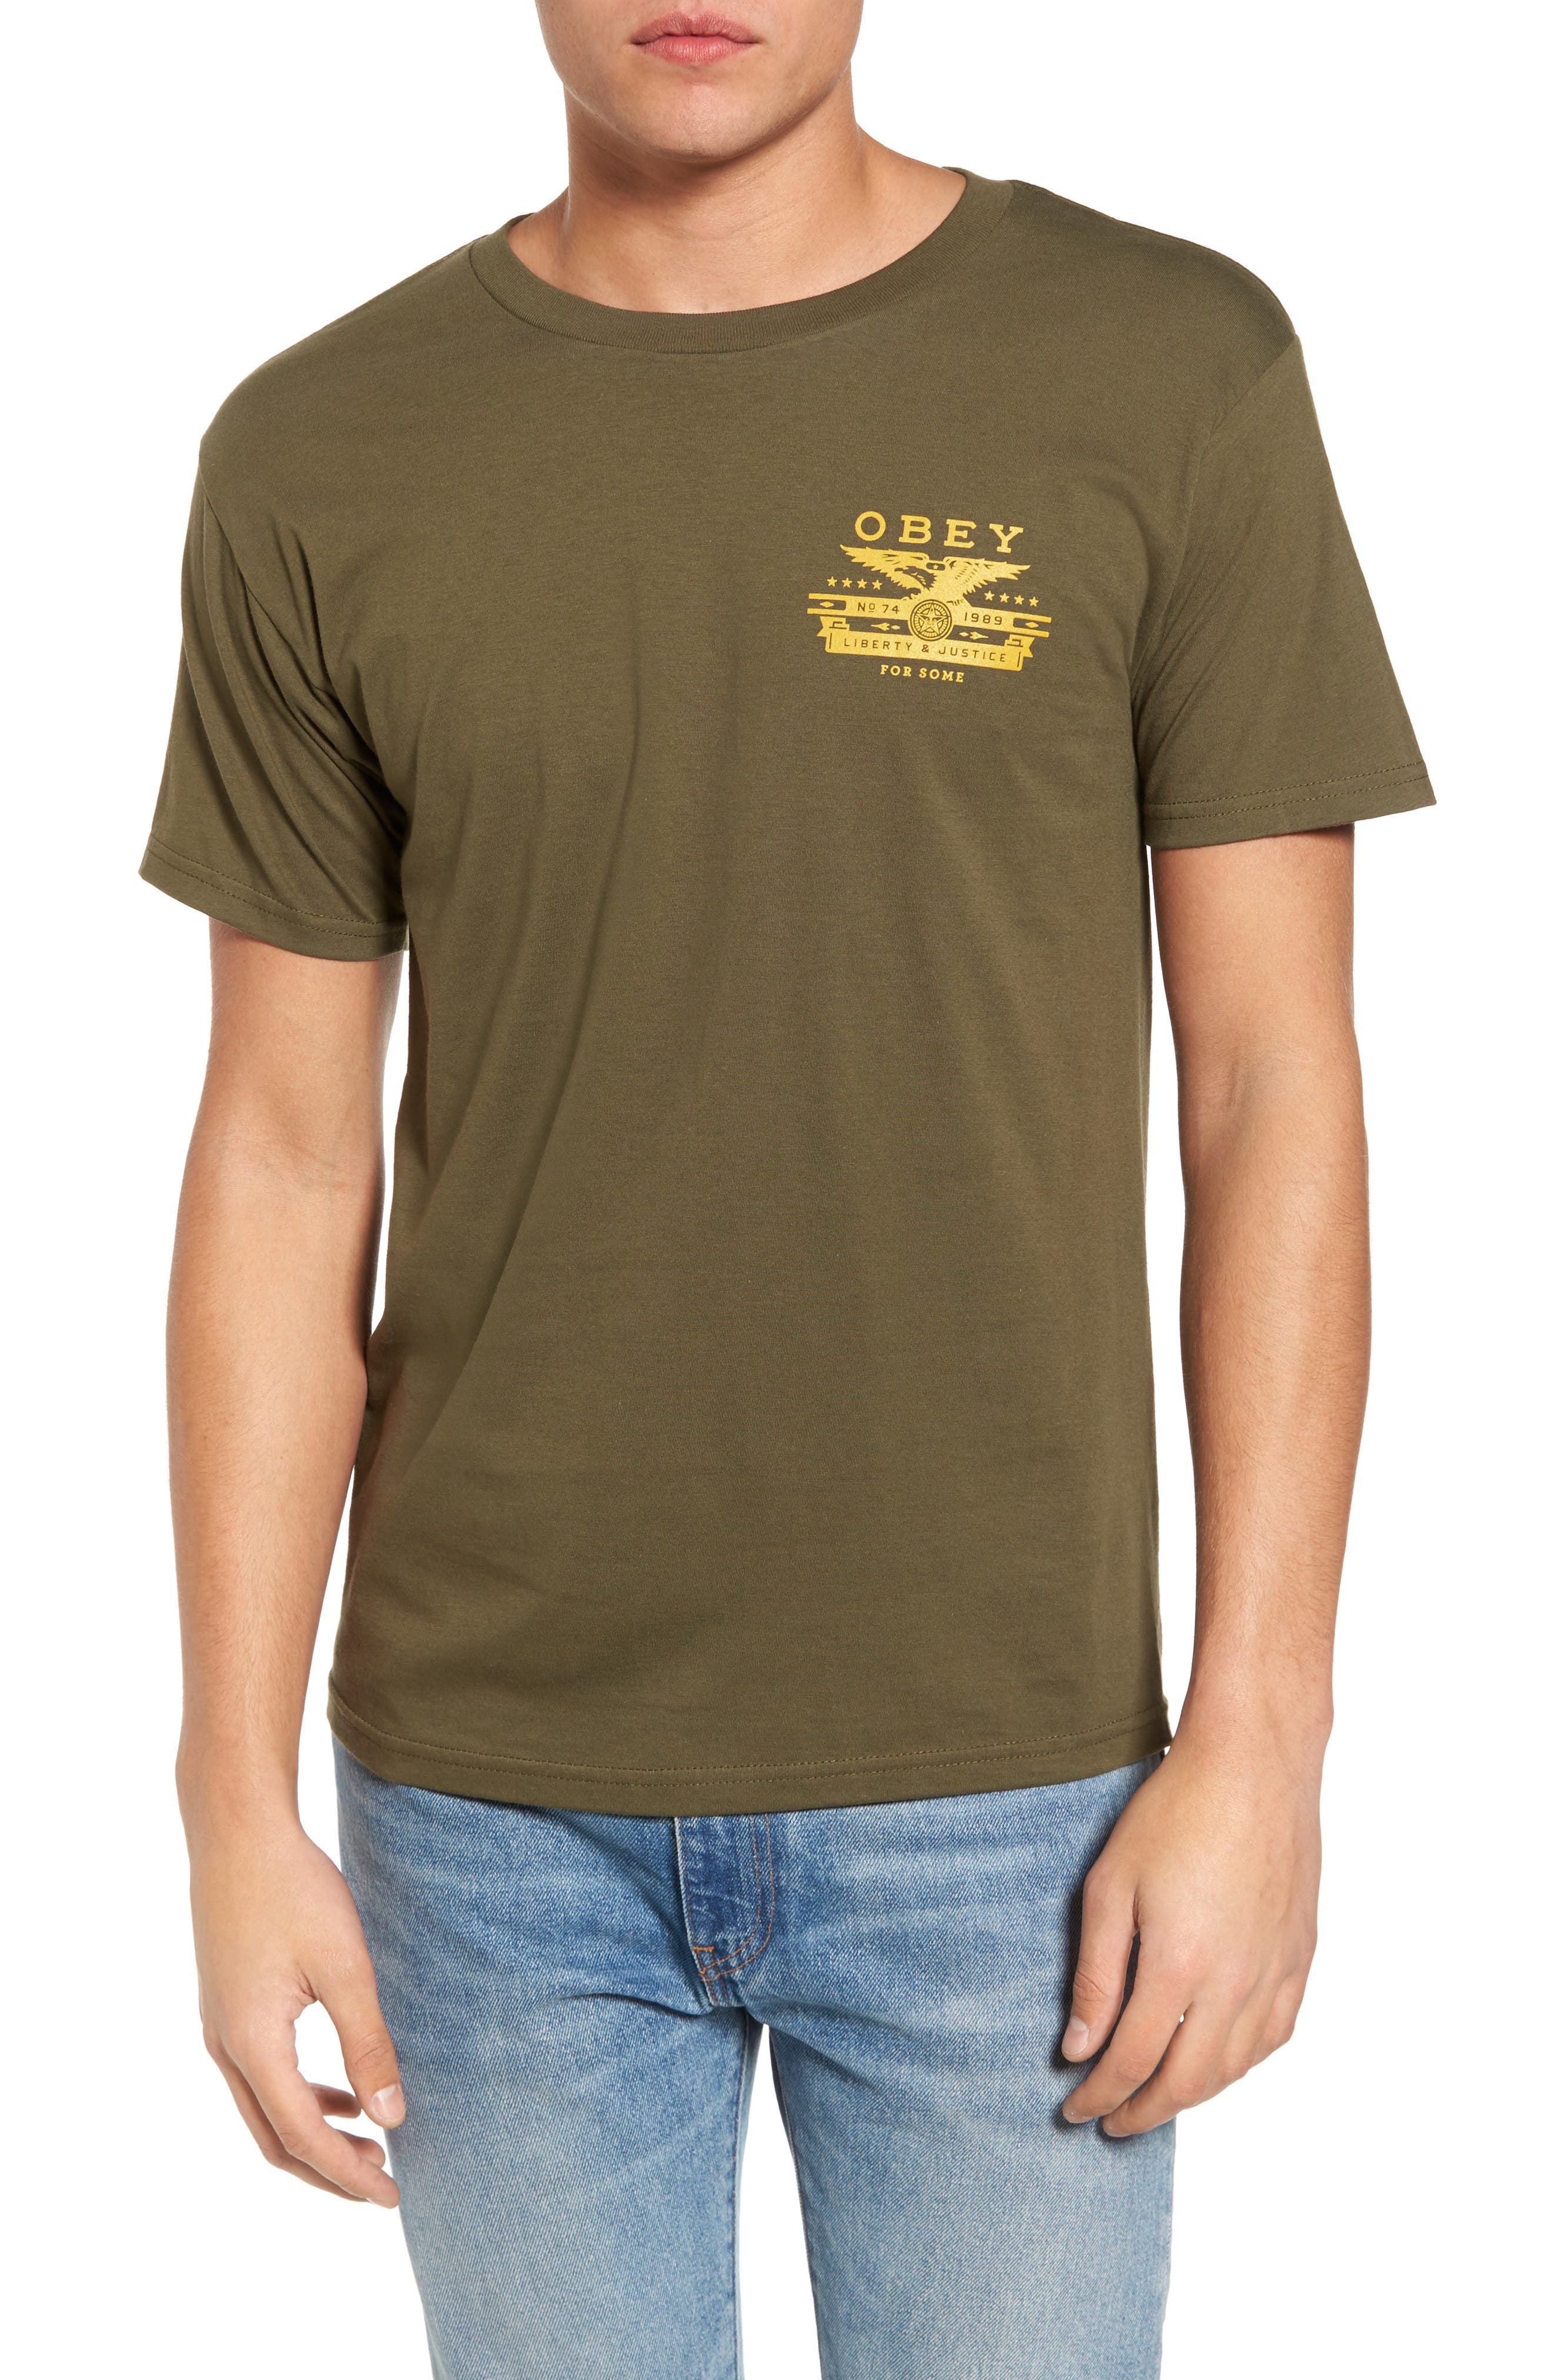 Dissent & Justice T-Shirt,                         Main,                         color, Military Olive